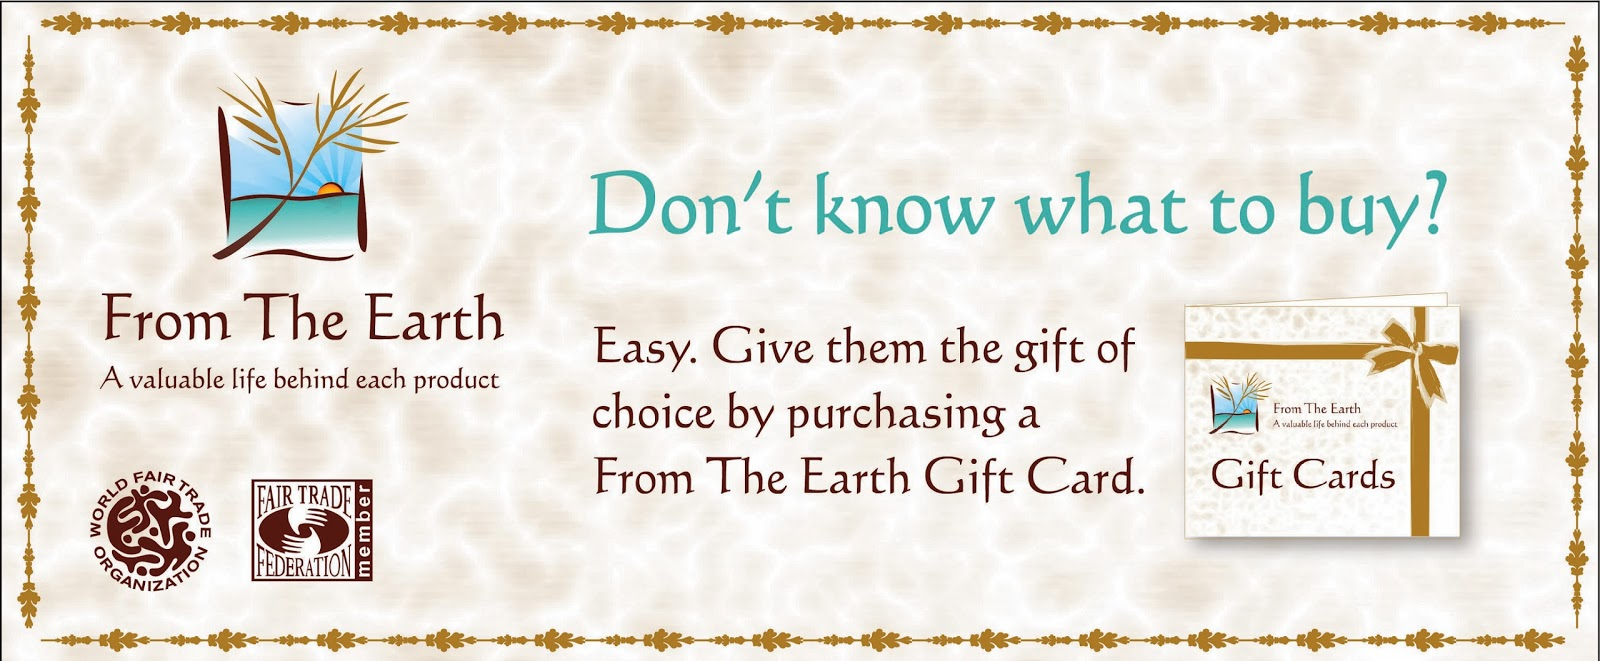 http://www.fromtheearthstore.com/collections/accessories/gift-cards